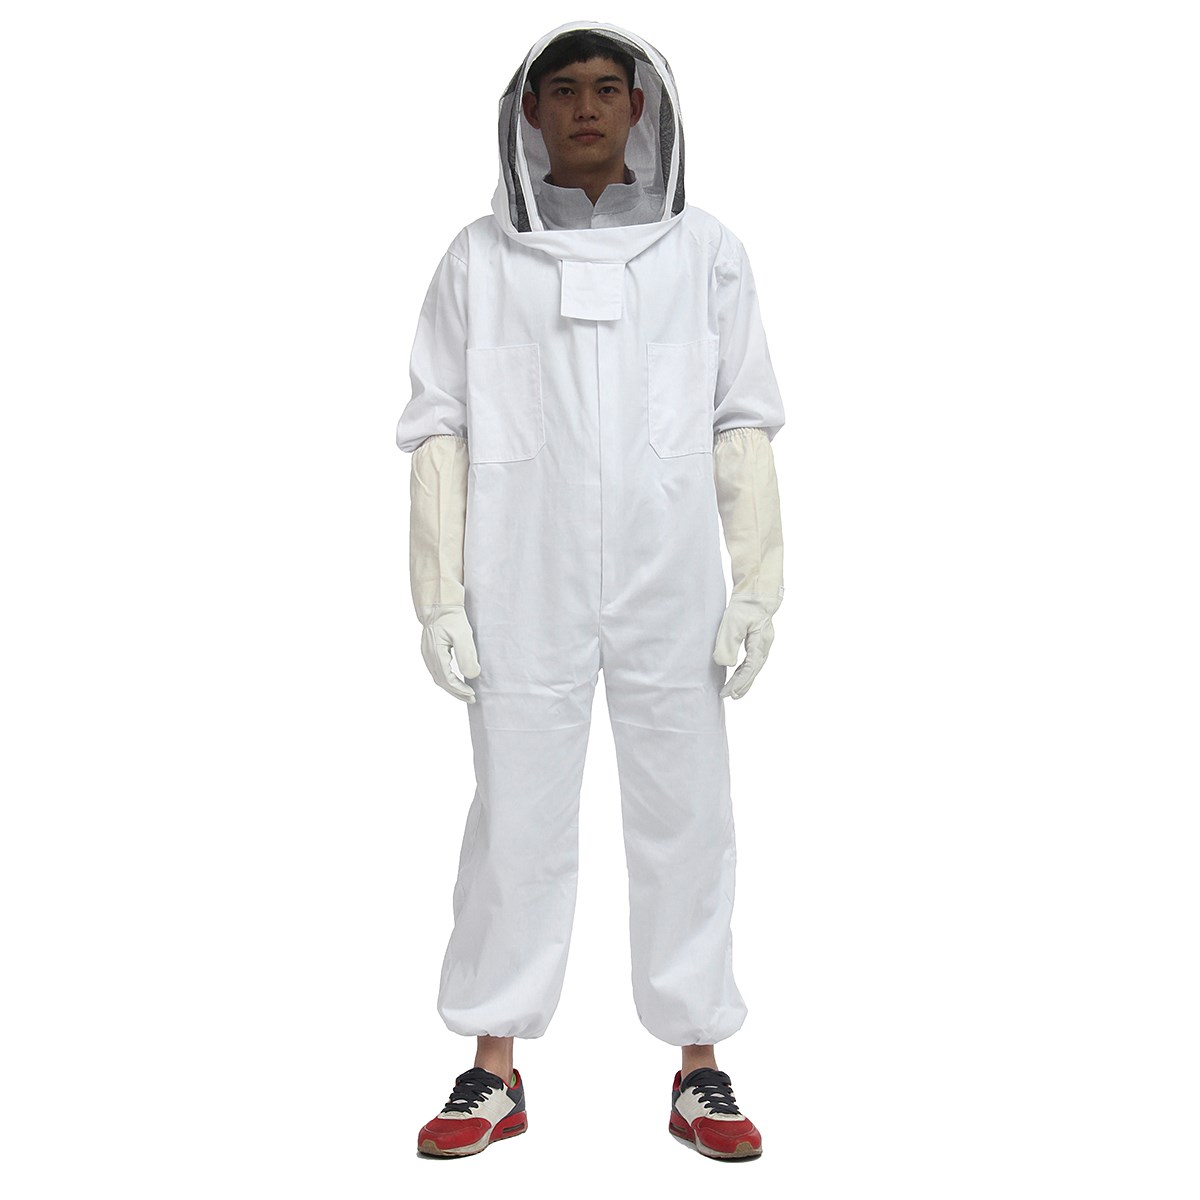 Beekeeper Beekeeping Protective Veil Suit Smock Bee Hat Gloves Full Body Set New Safety Clothing комплектующие для кормушек beekeeping 4 equipment121mm 91 158